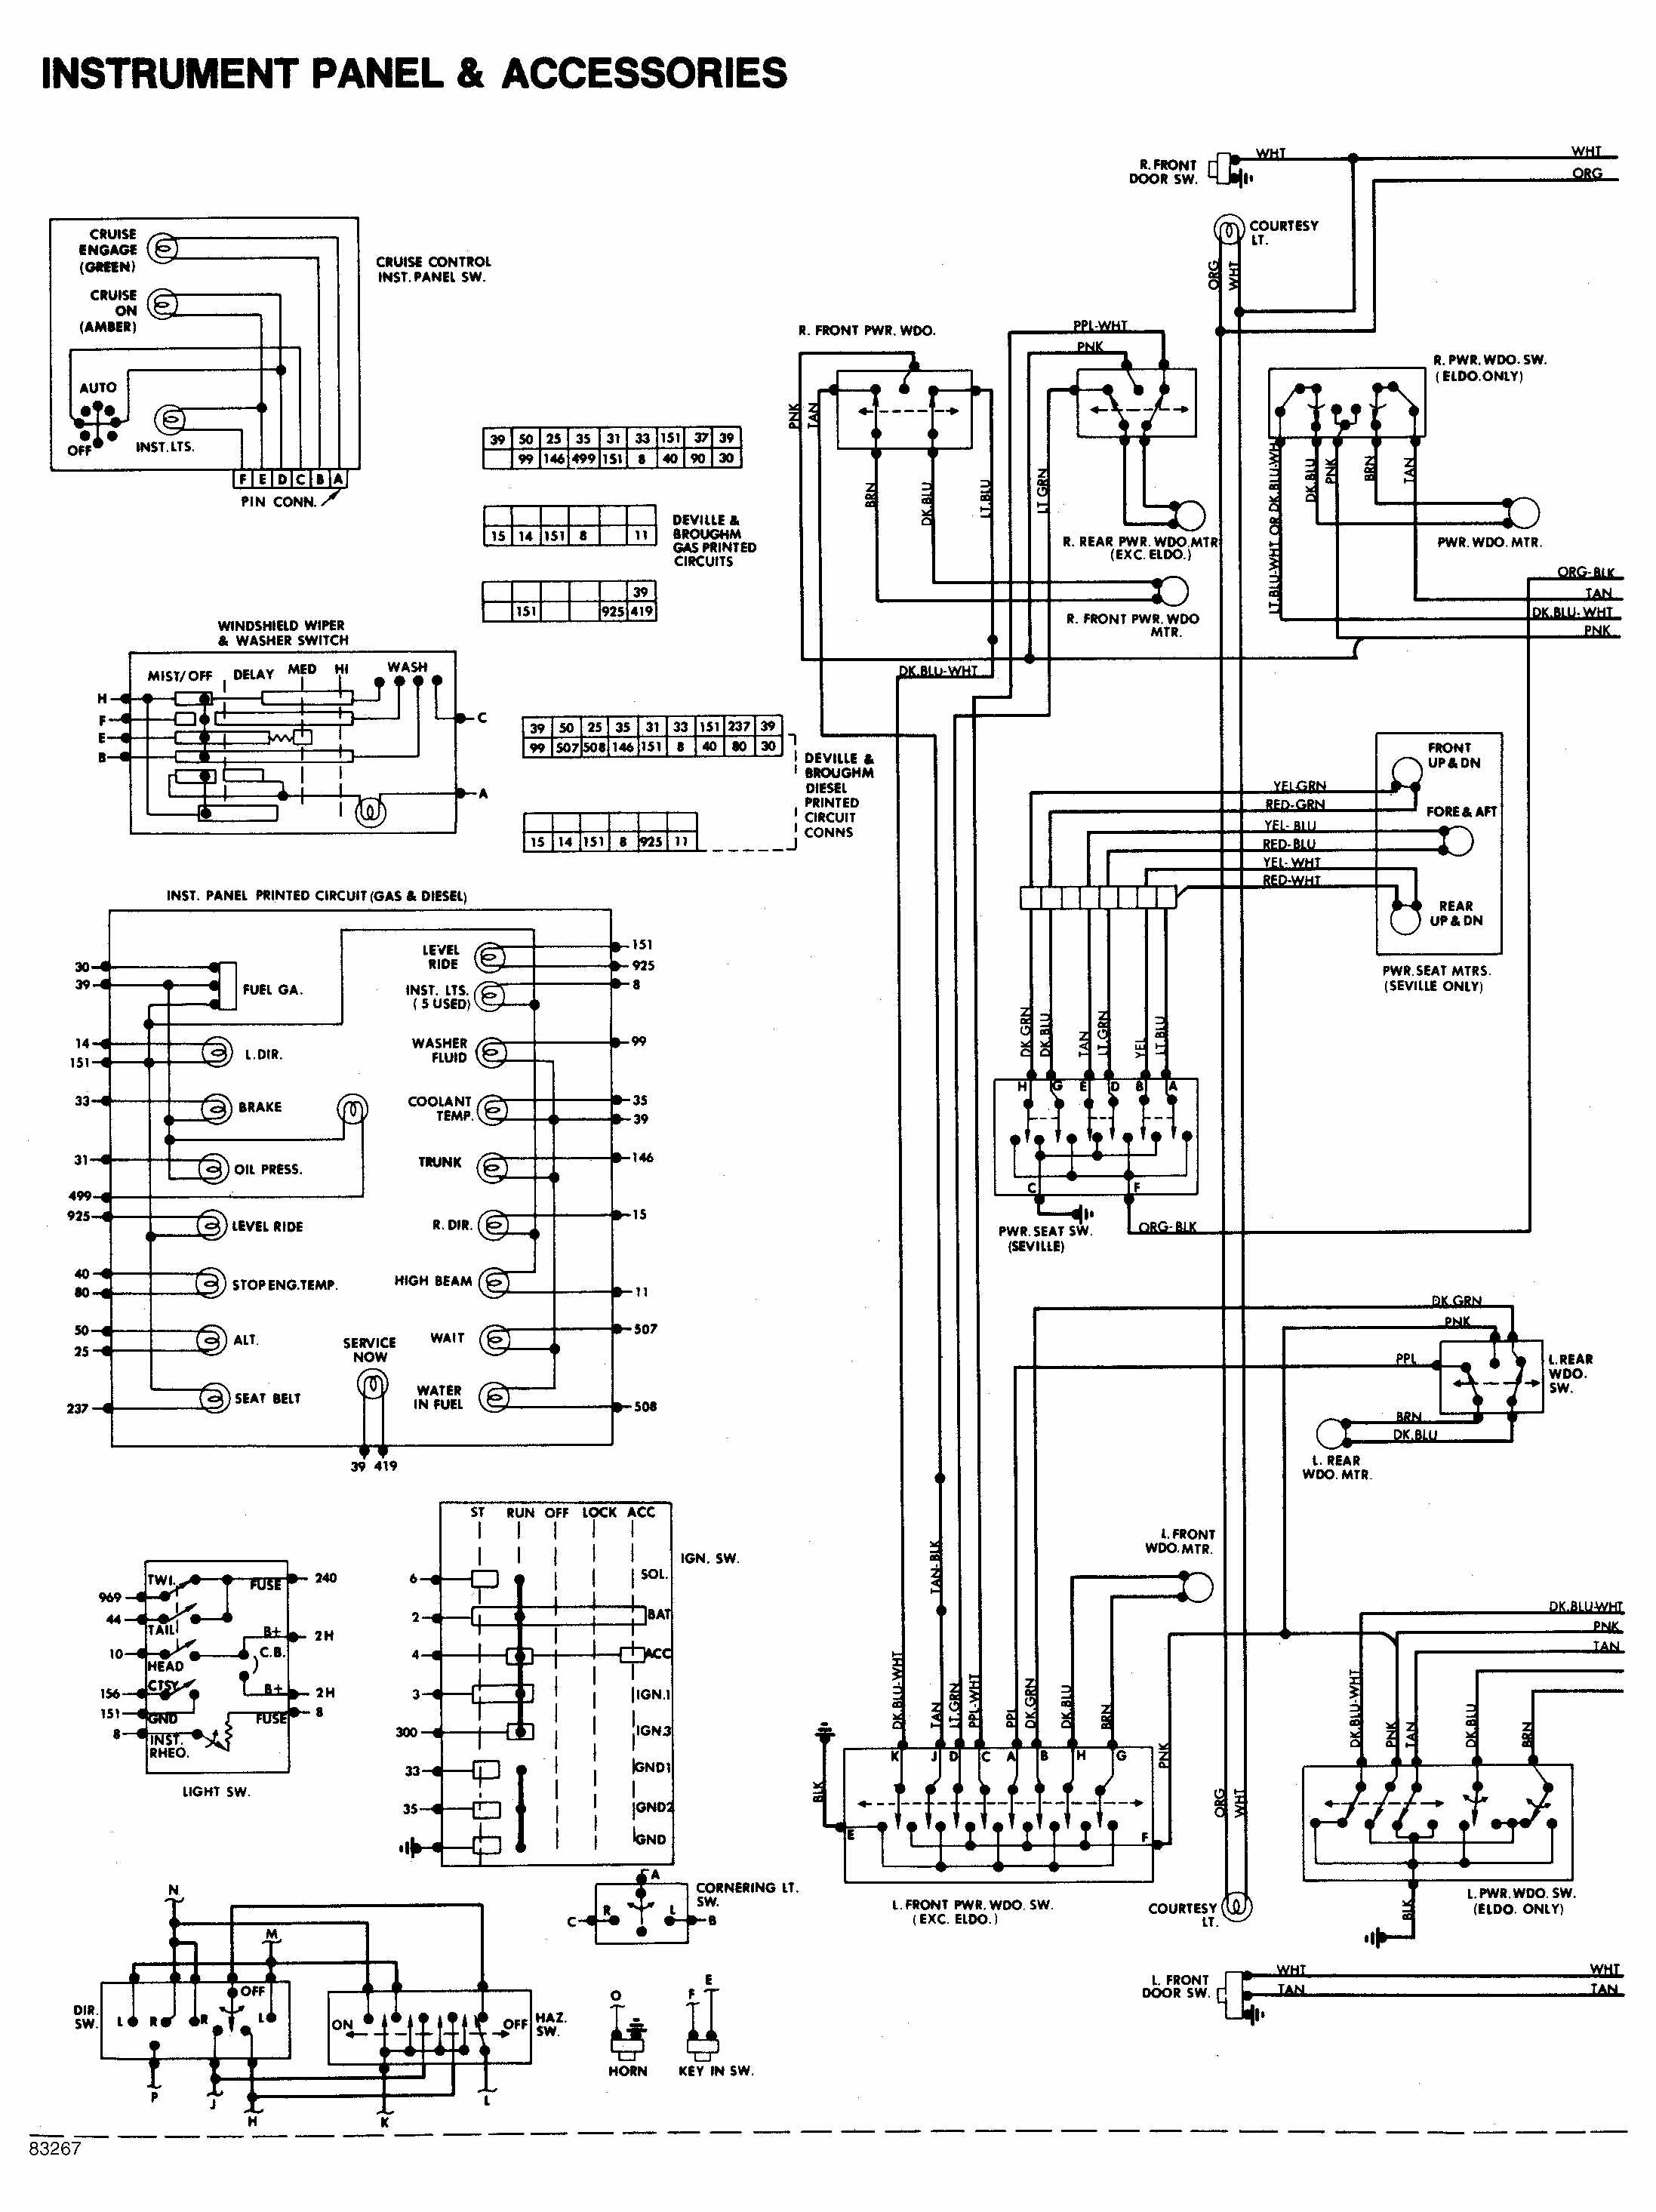 instrument panel and accessories wiring diagram of 1984 cadillac deville chevy diagrams  at crackthecode.co